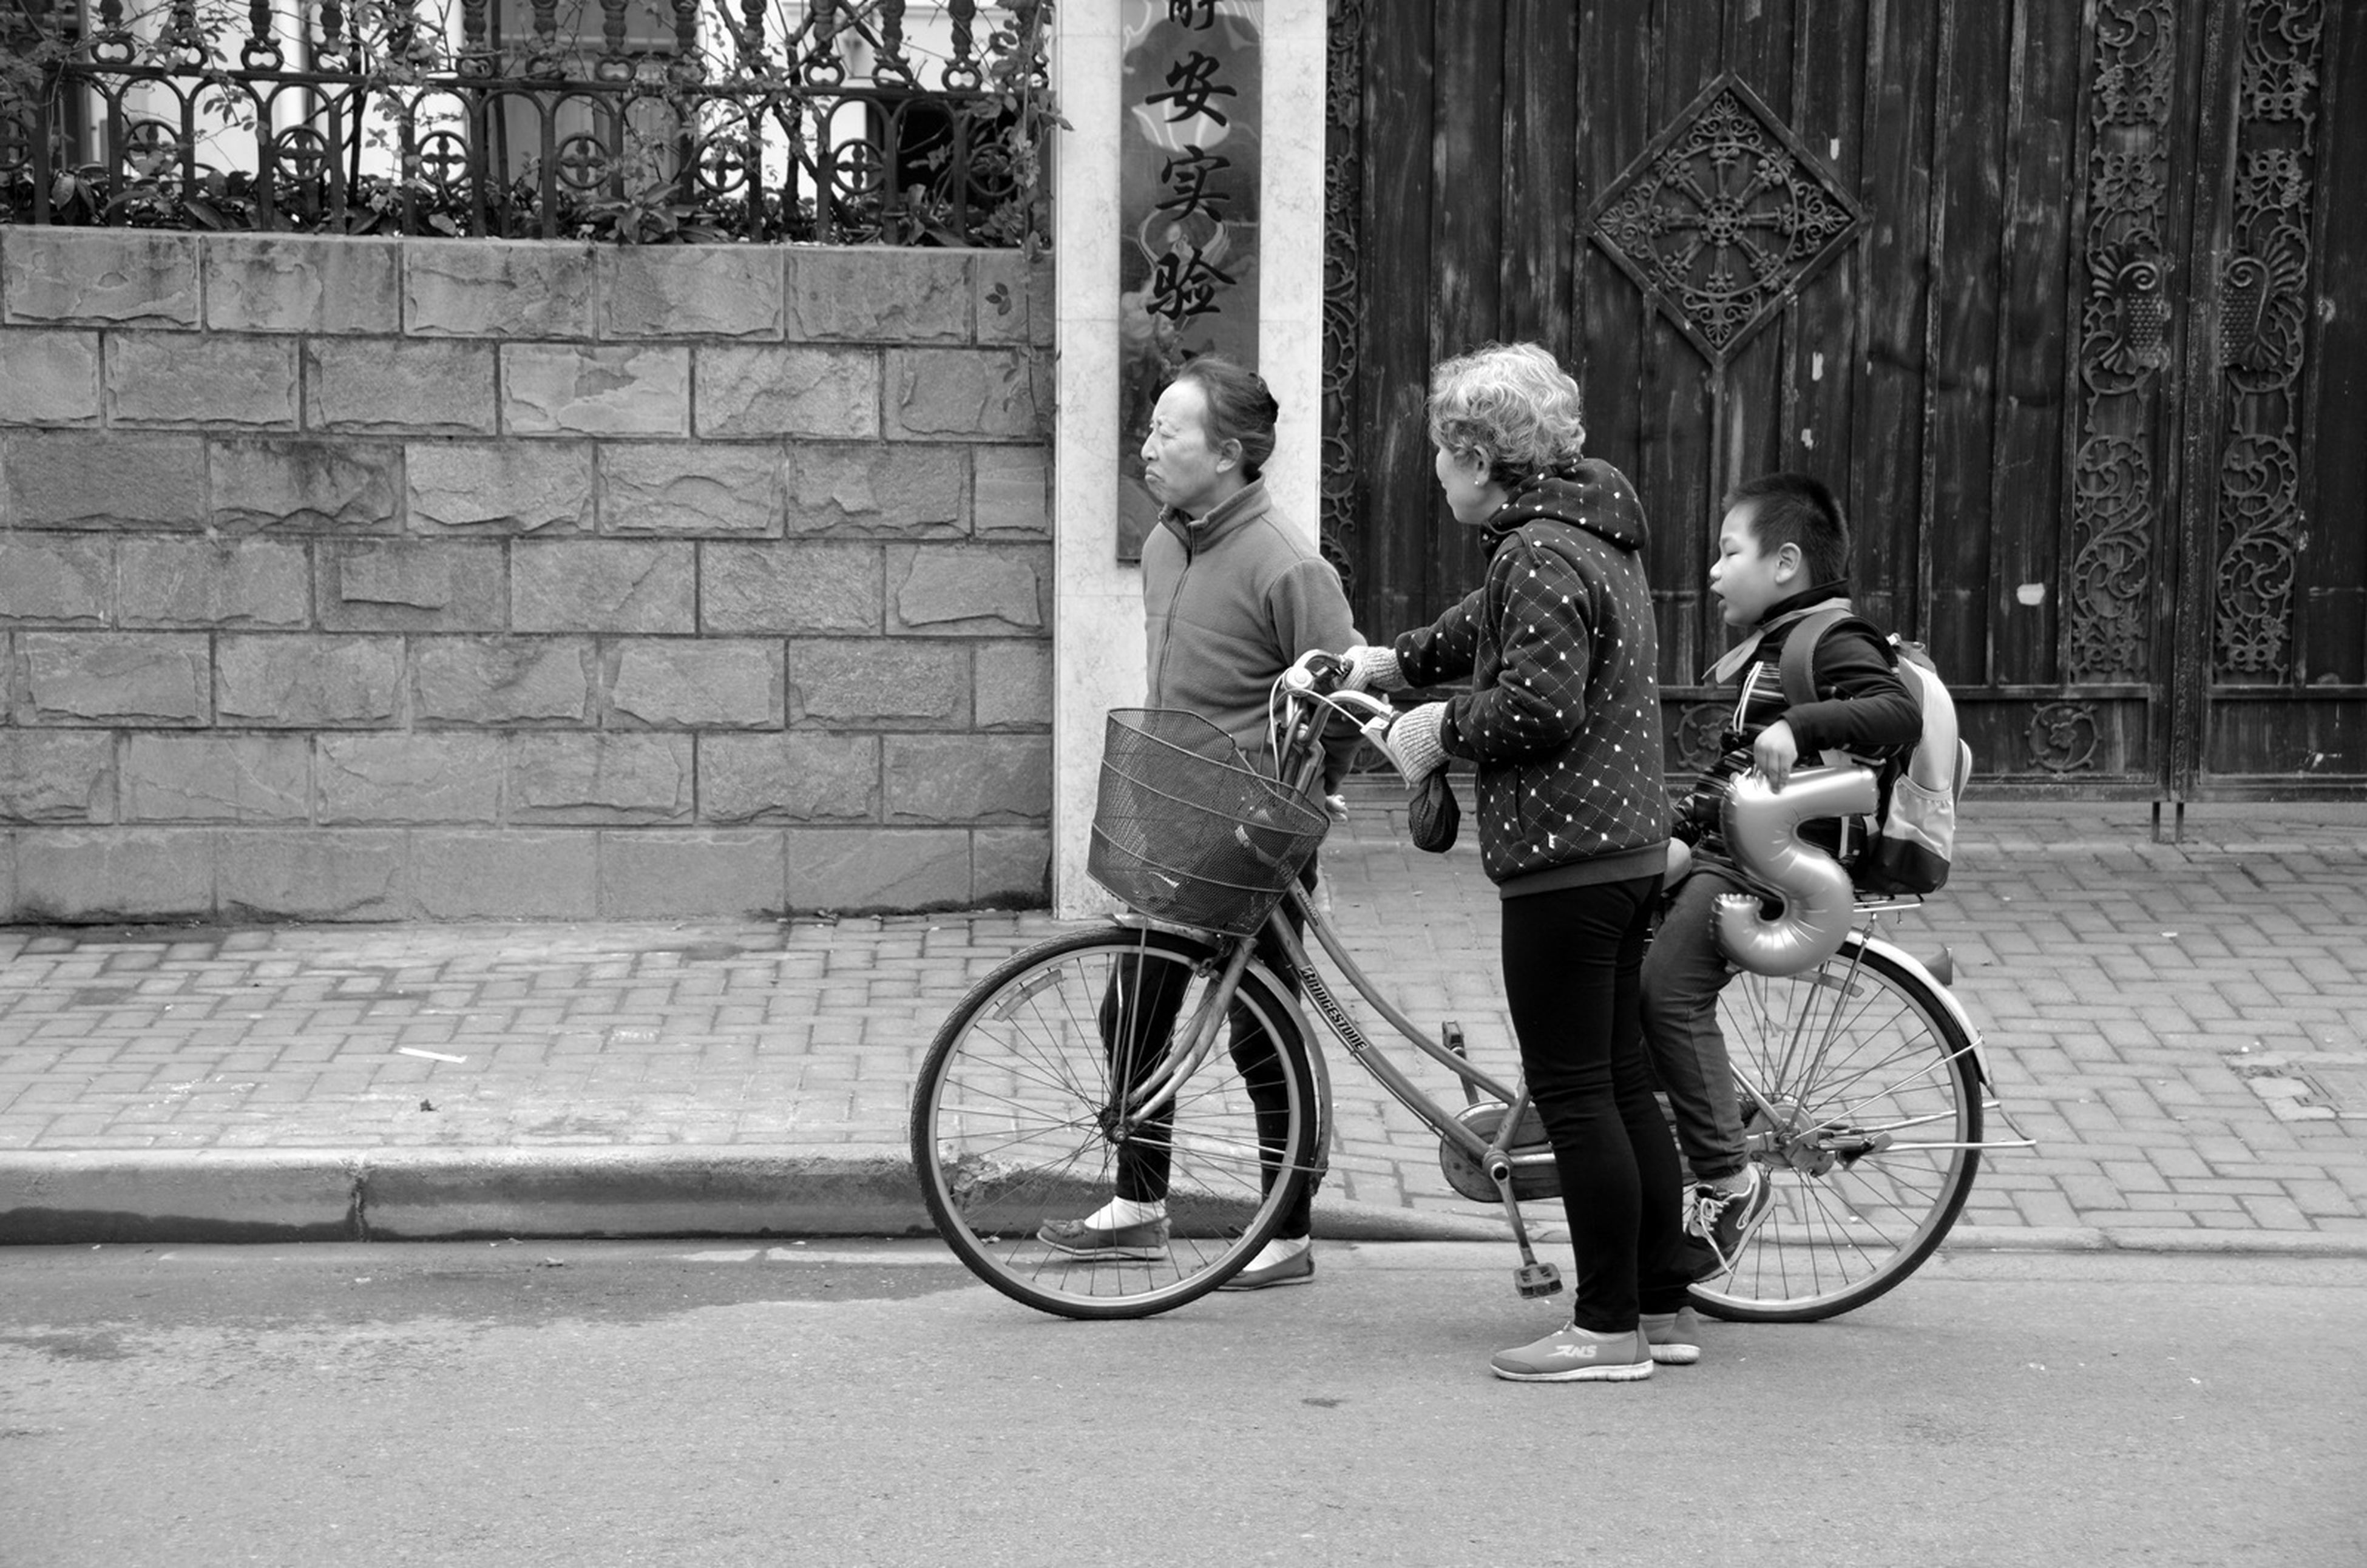 bicycle, young adult, full length, young women, happiness, males, outdoors, father, cycling, adult, people, real people, city, senior adult, togetherness, childhood, day, adults only, men, smiling